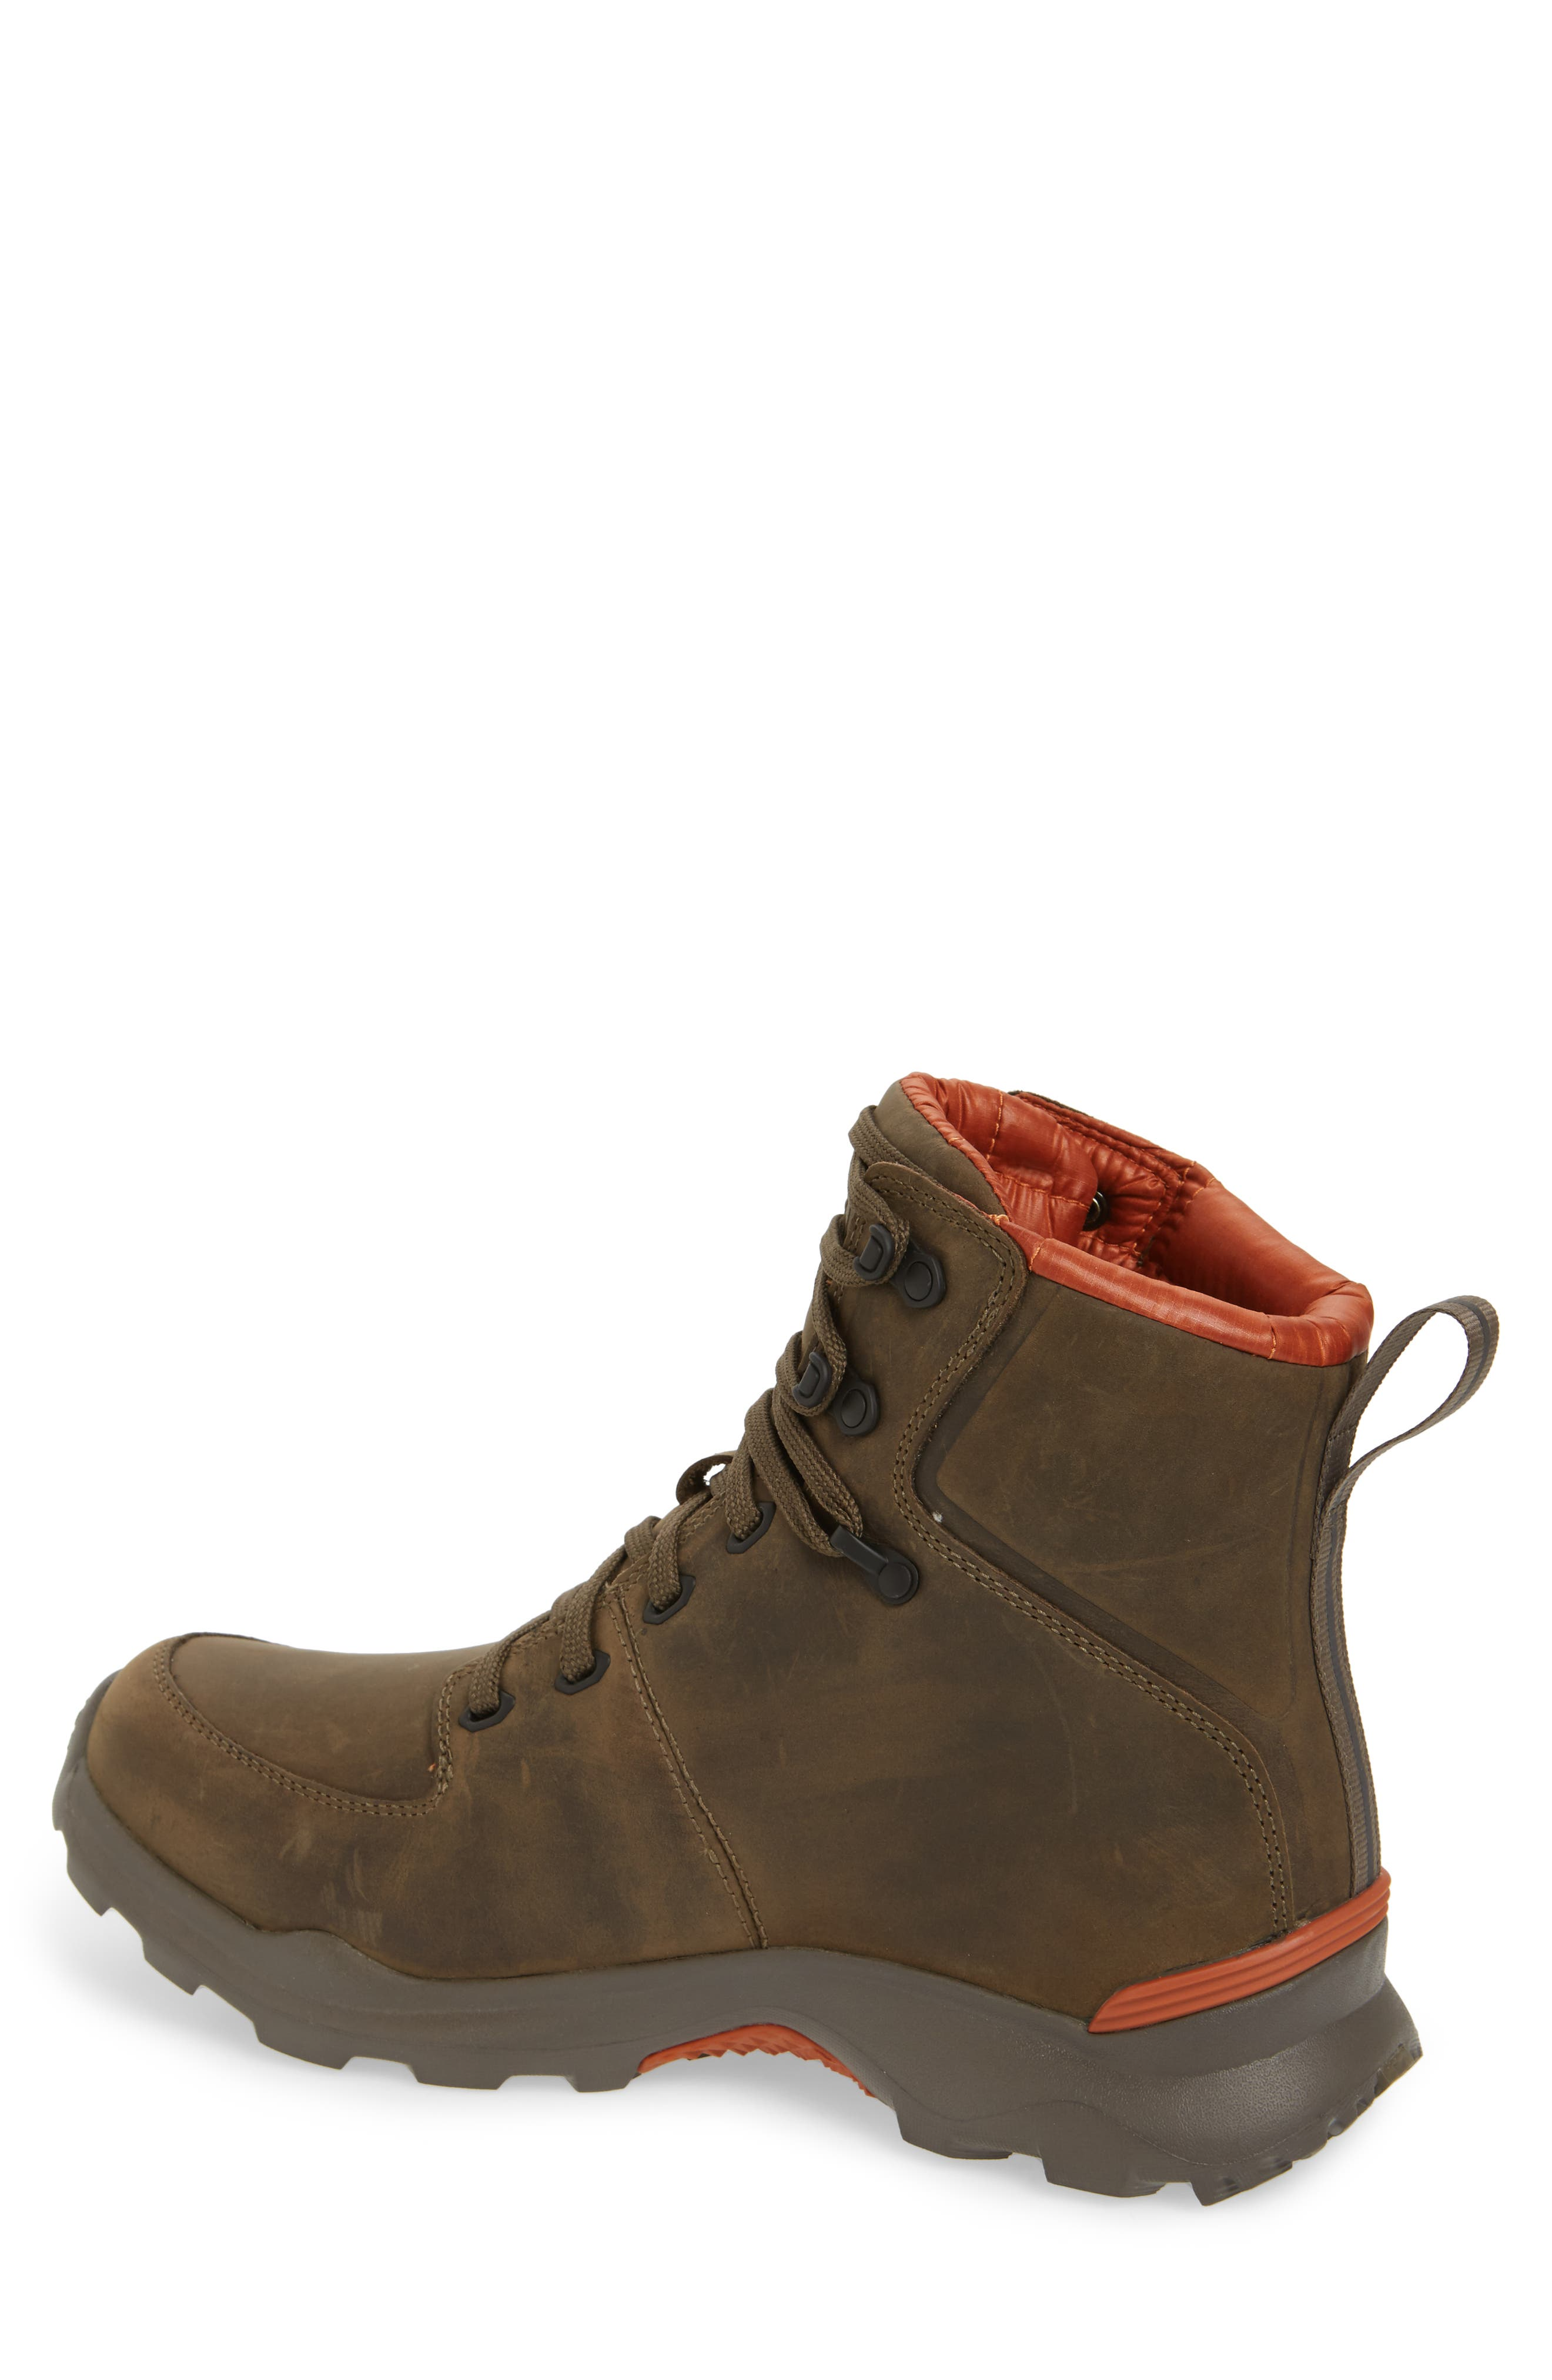 Alternate Image 2  - The North Face Thermoball™ Versa Waterproof Boot (Men)